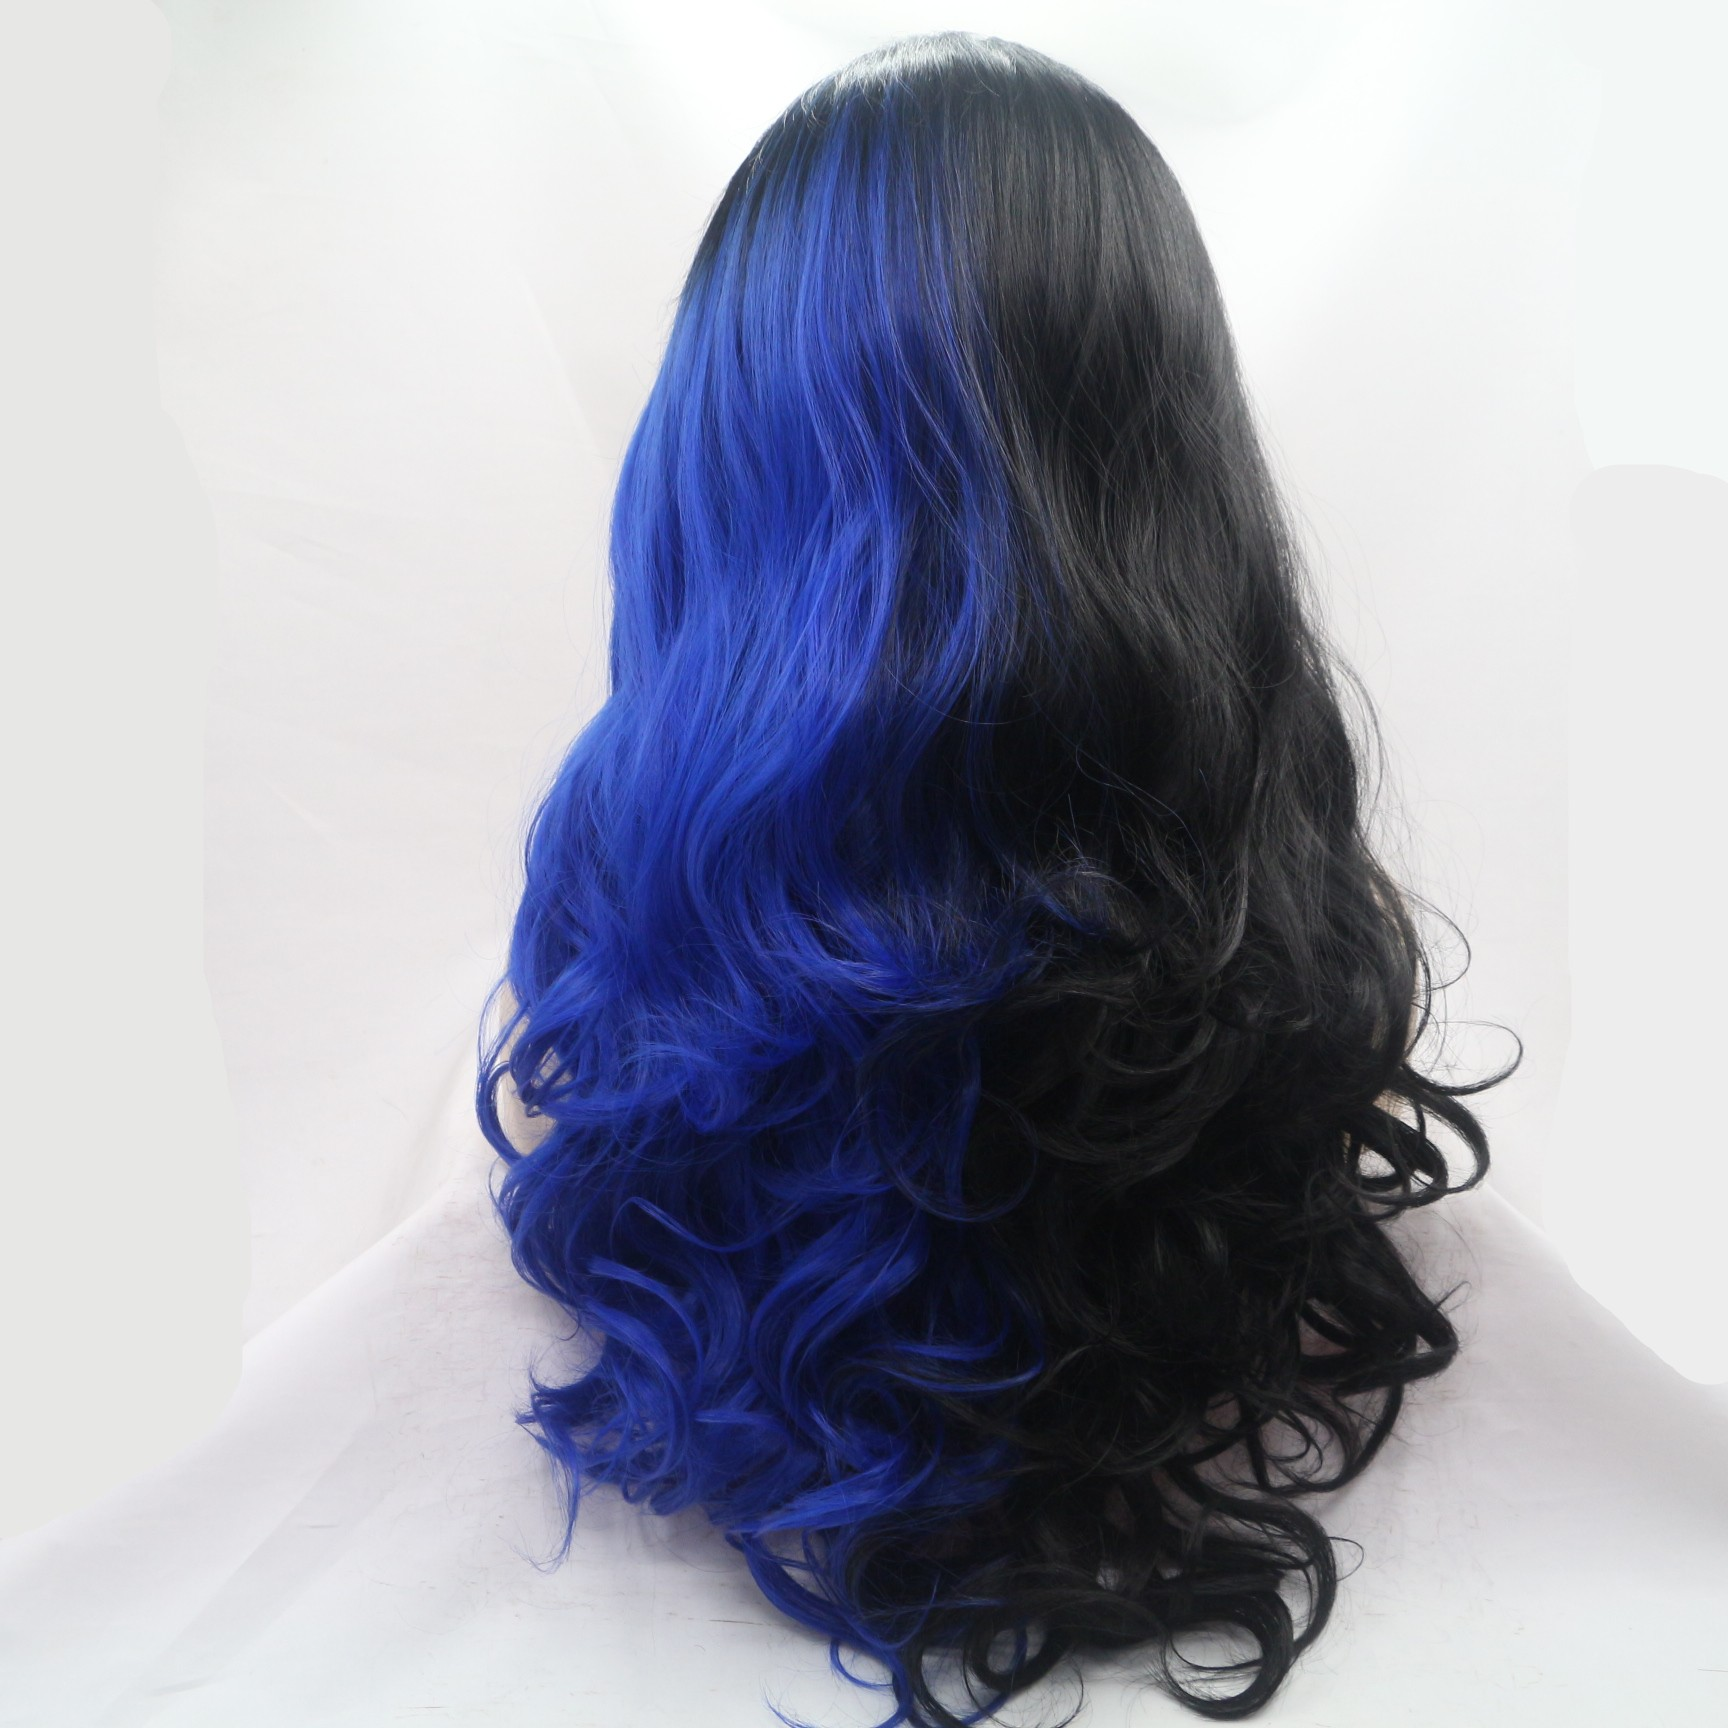 2018 New Unique Coloring Black Blue Half Tones Long Wavy Synthetic Lace Front Wig 180% Density Lace Wig